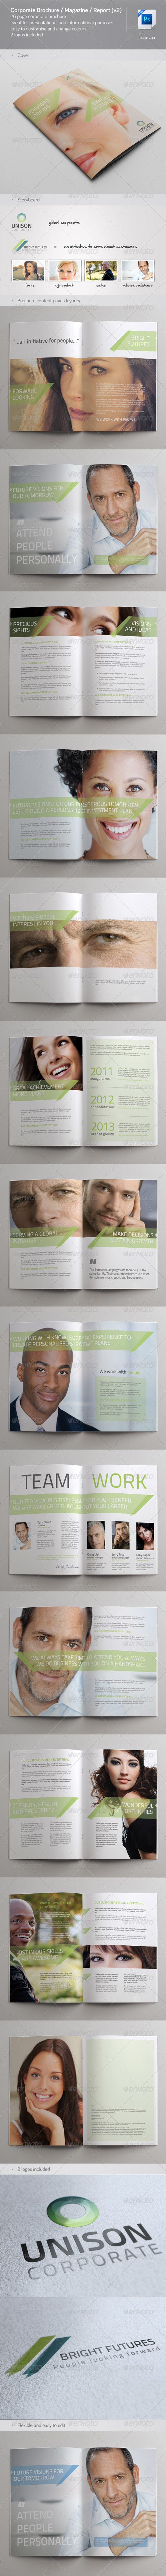 Corporate Brochure / Magazine / Report (v2) - Corporate Brochures